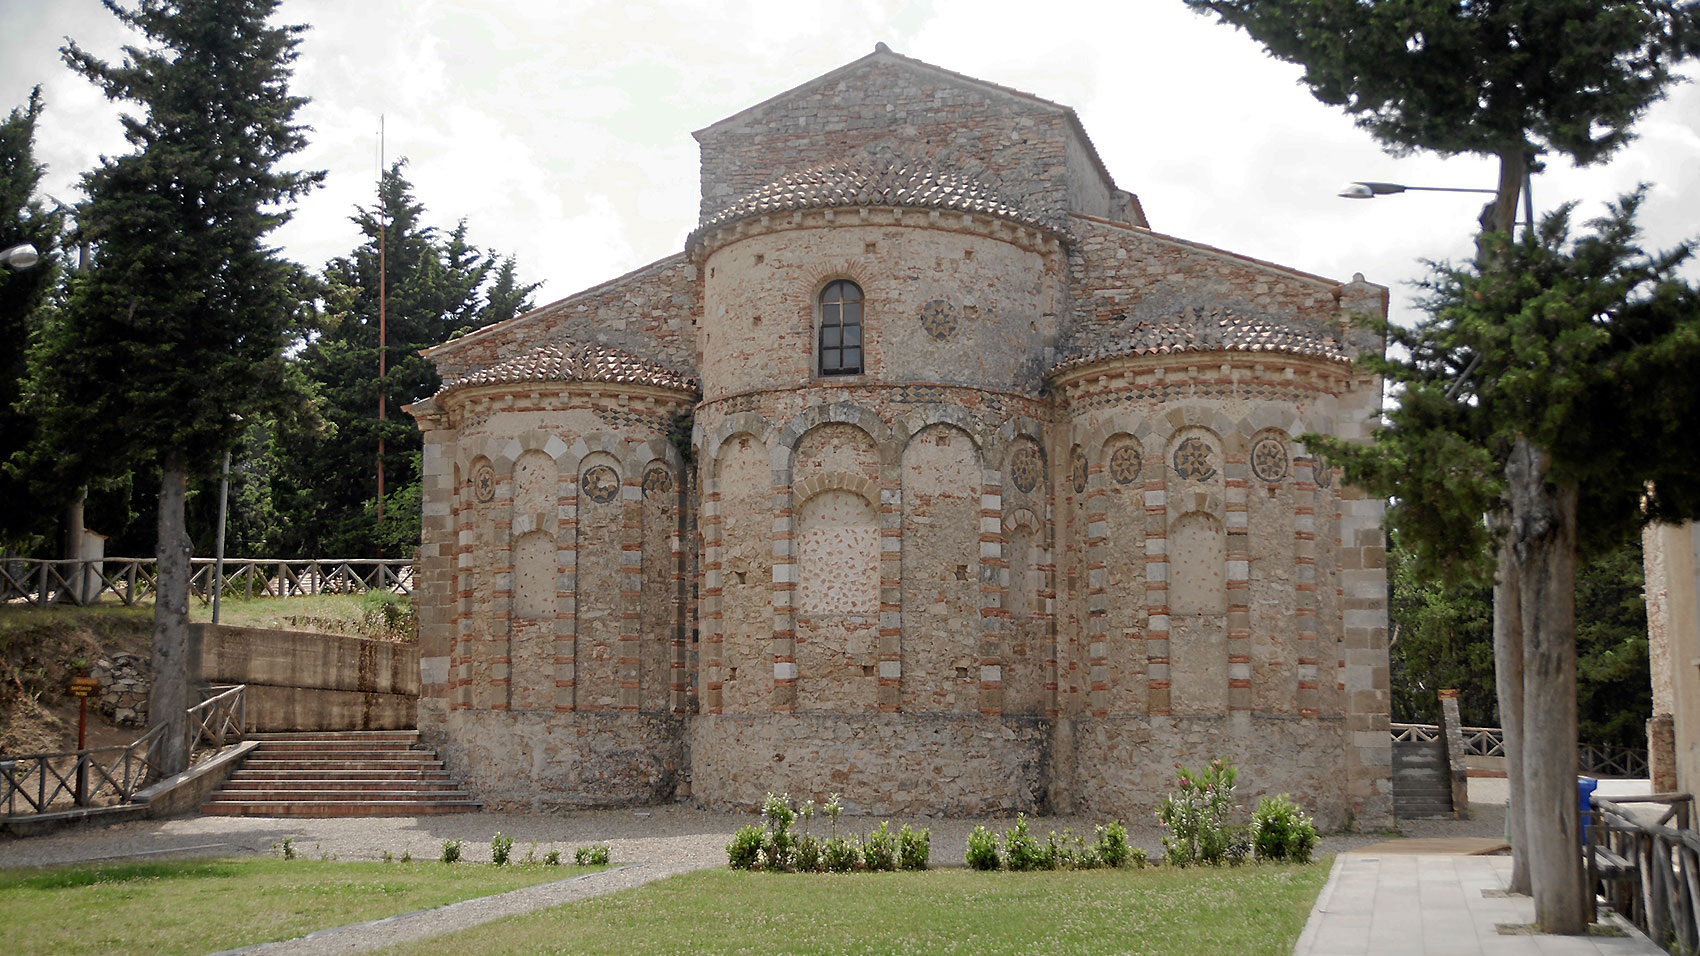 L'abside dell'abbazia di S. Maria del Patire